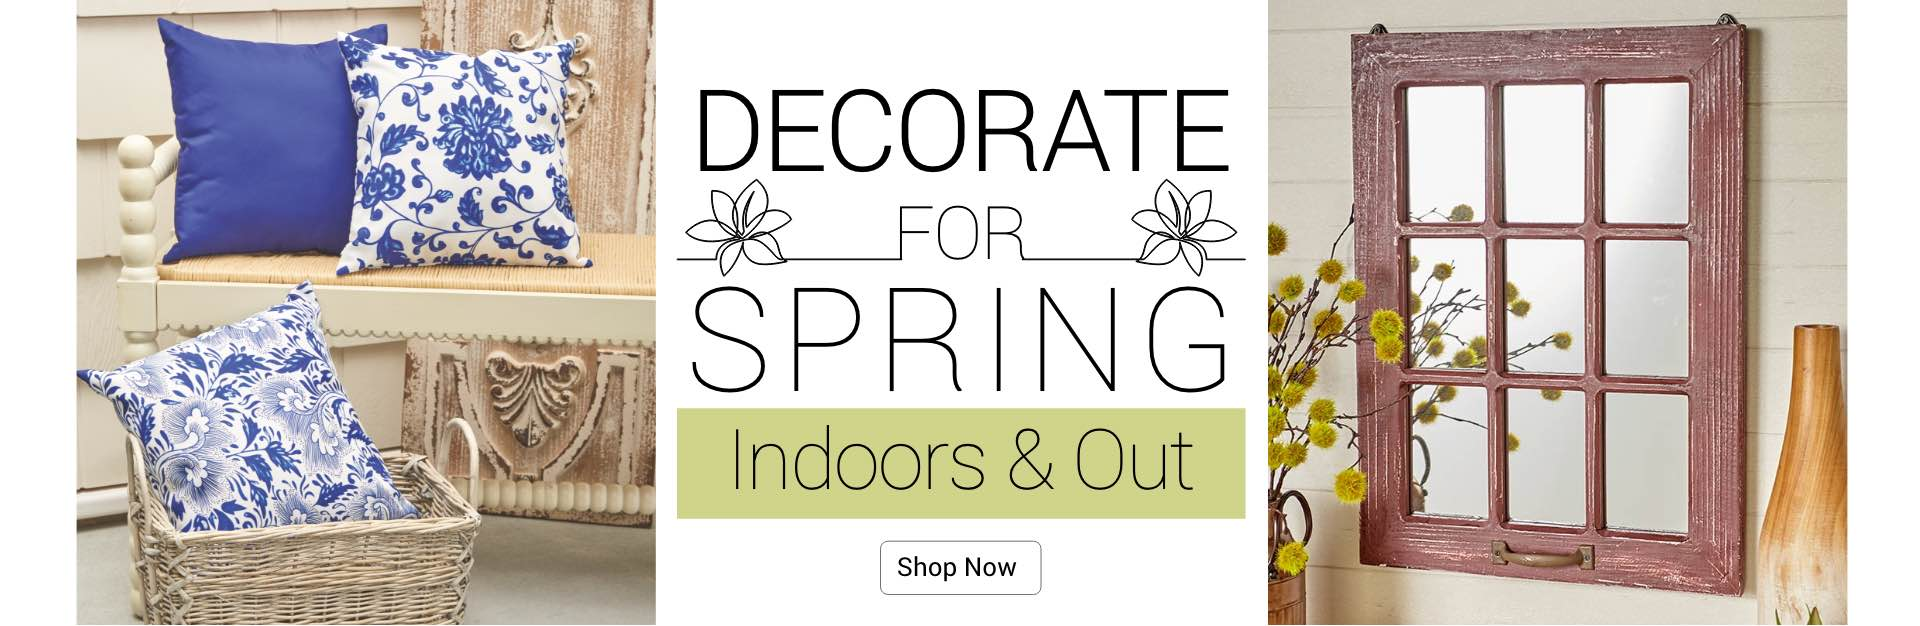 Decorate For Spring Indoors and Out. Shop Now